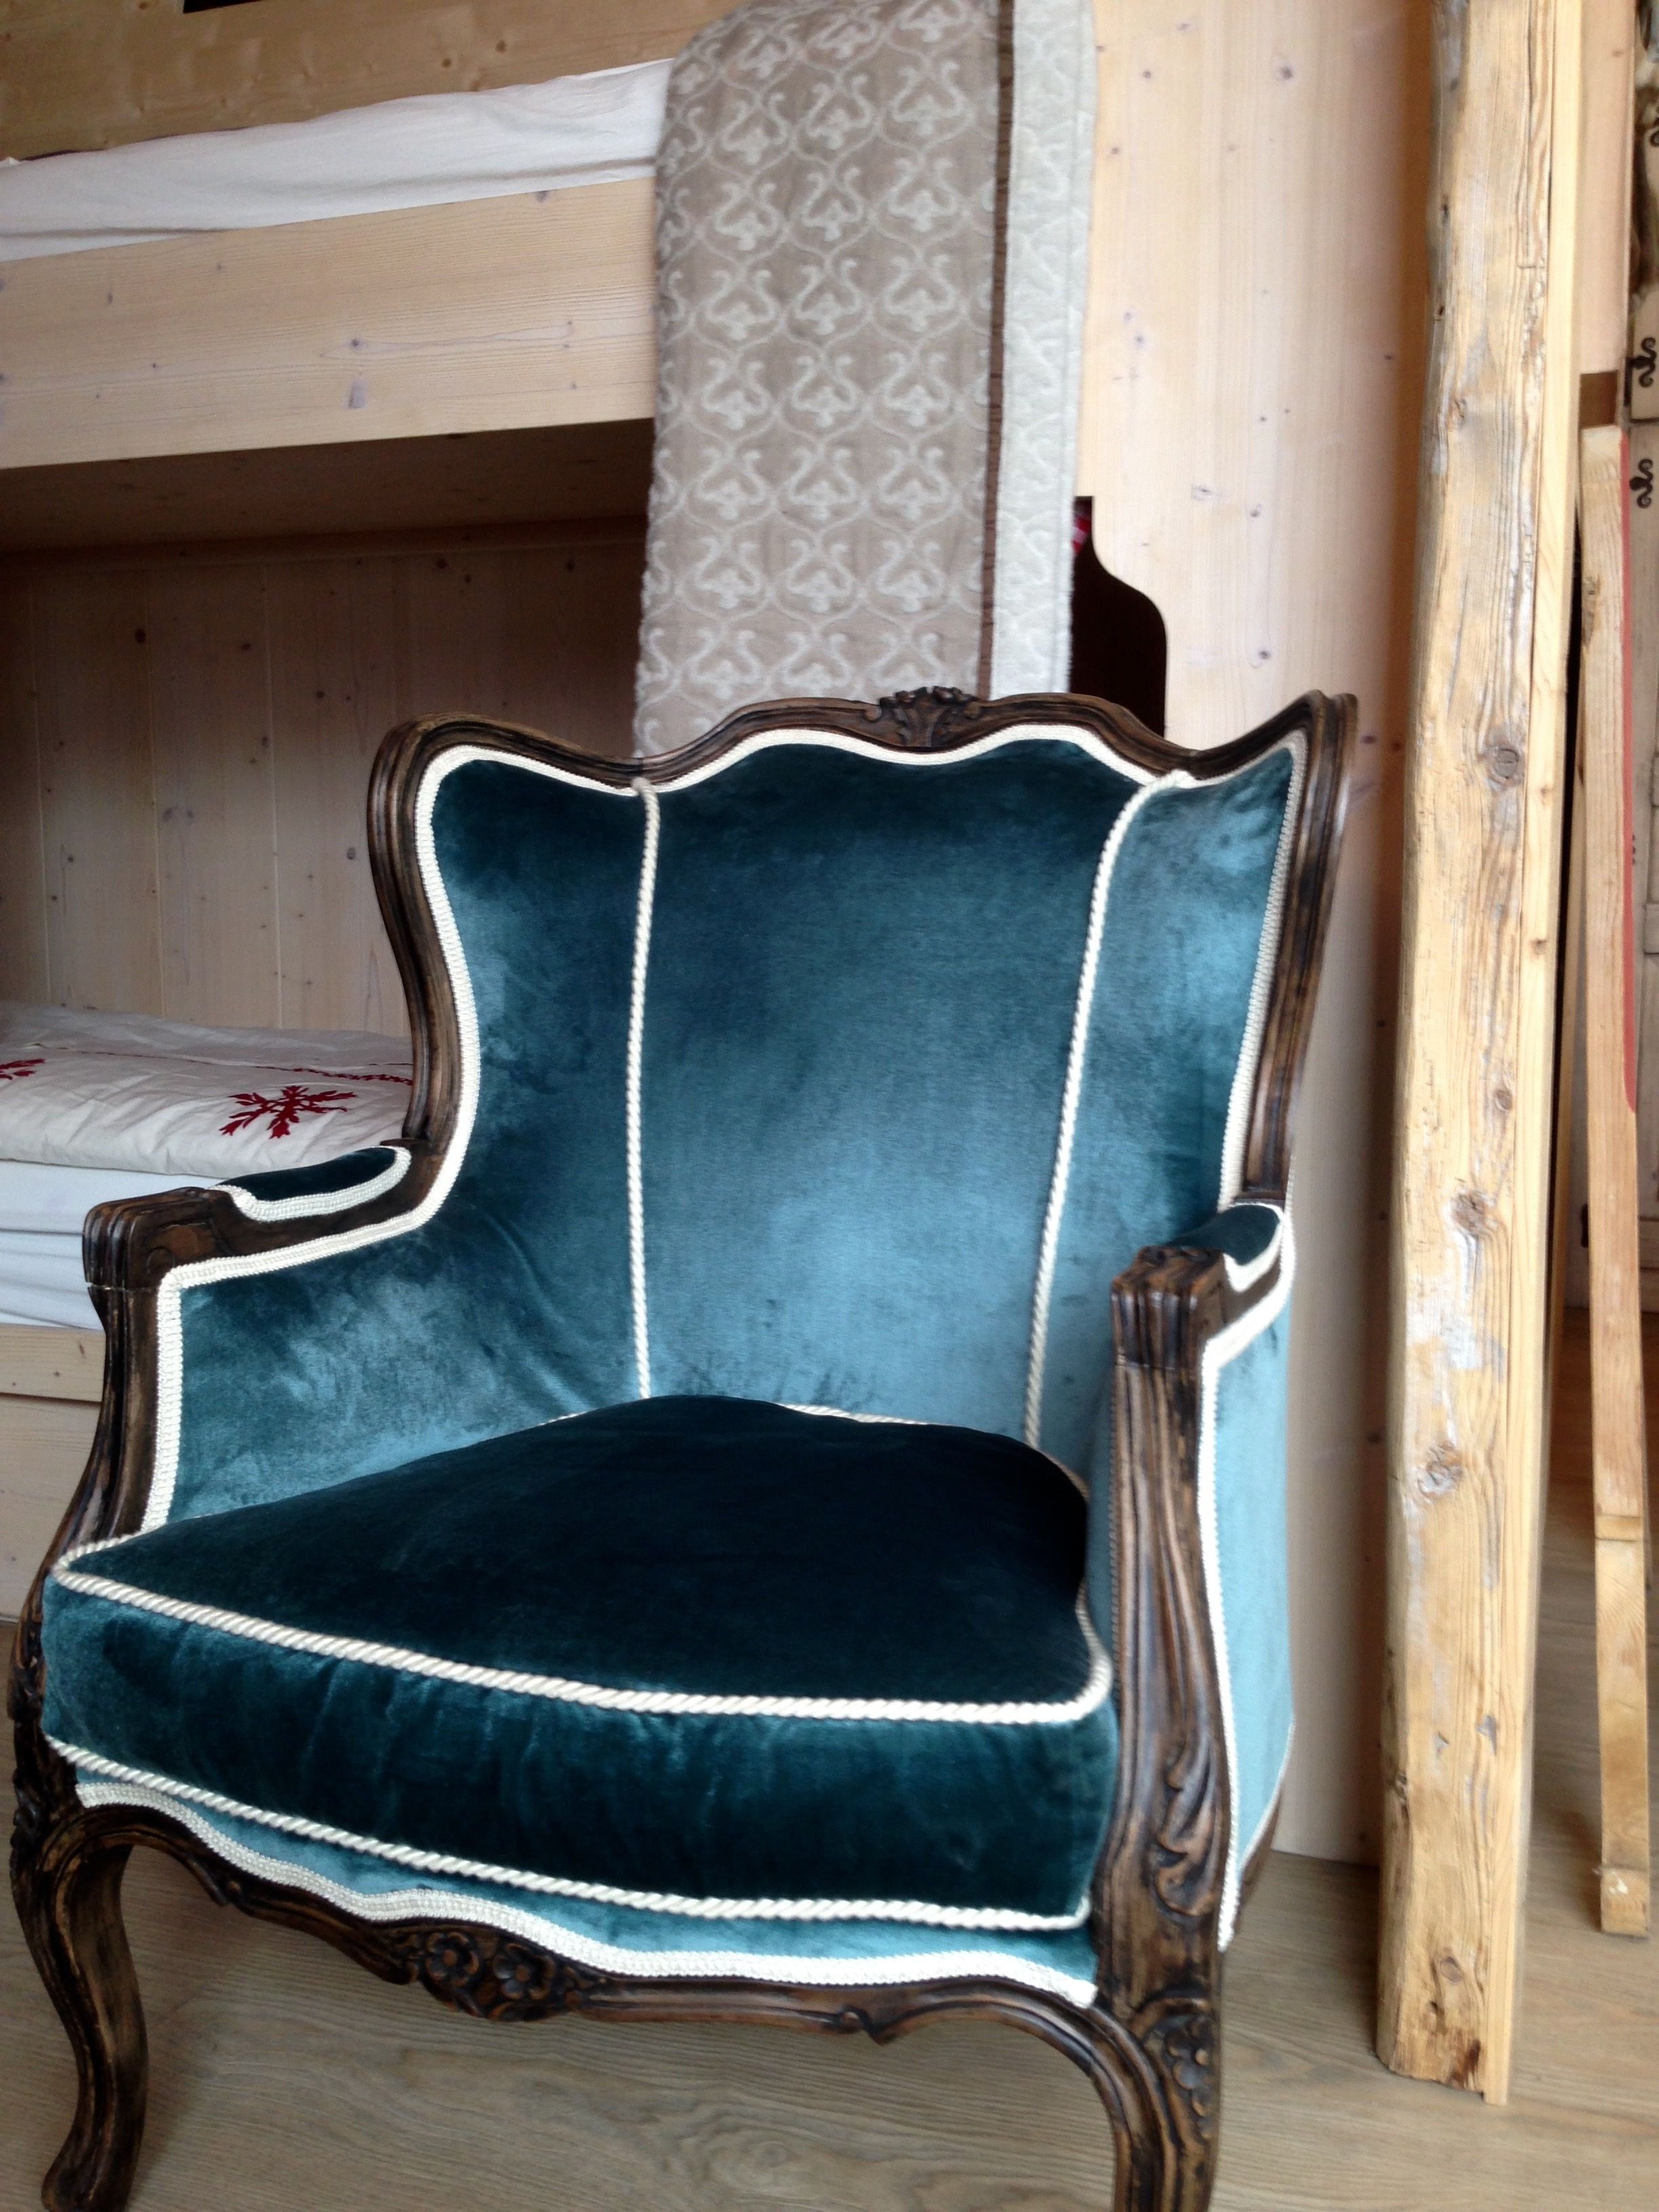 Restyling of a ears armchair, silk velvet L'Opificio. Thanks to Conrad Schirmann